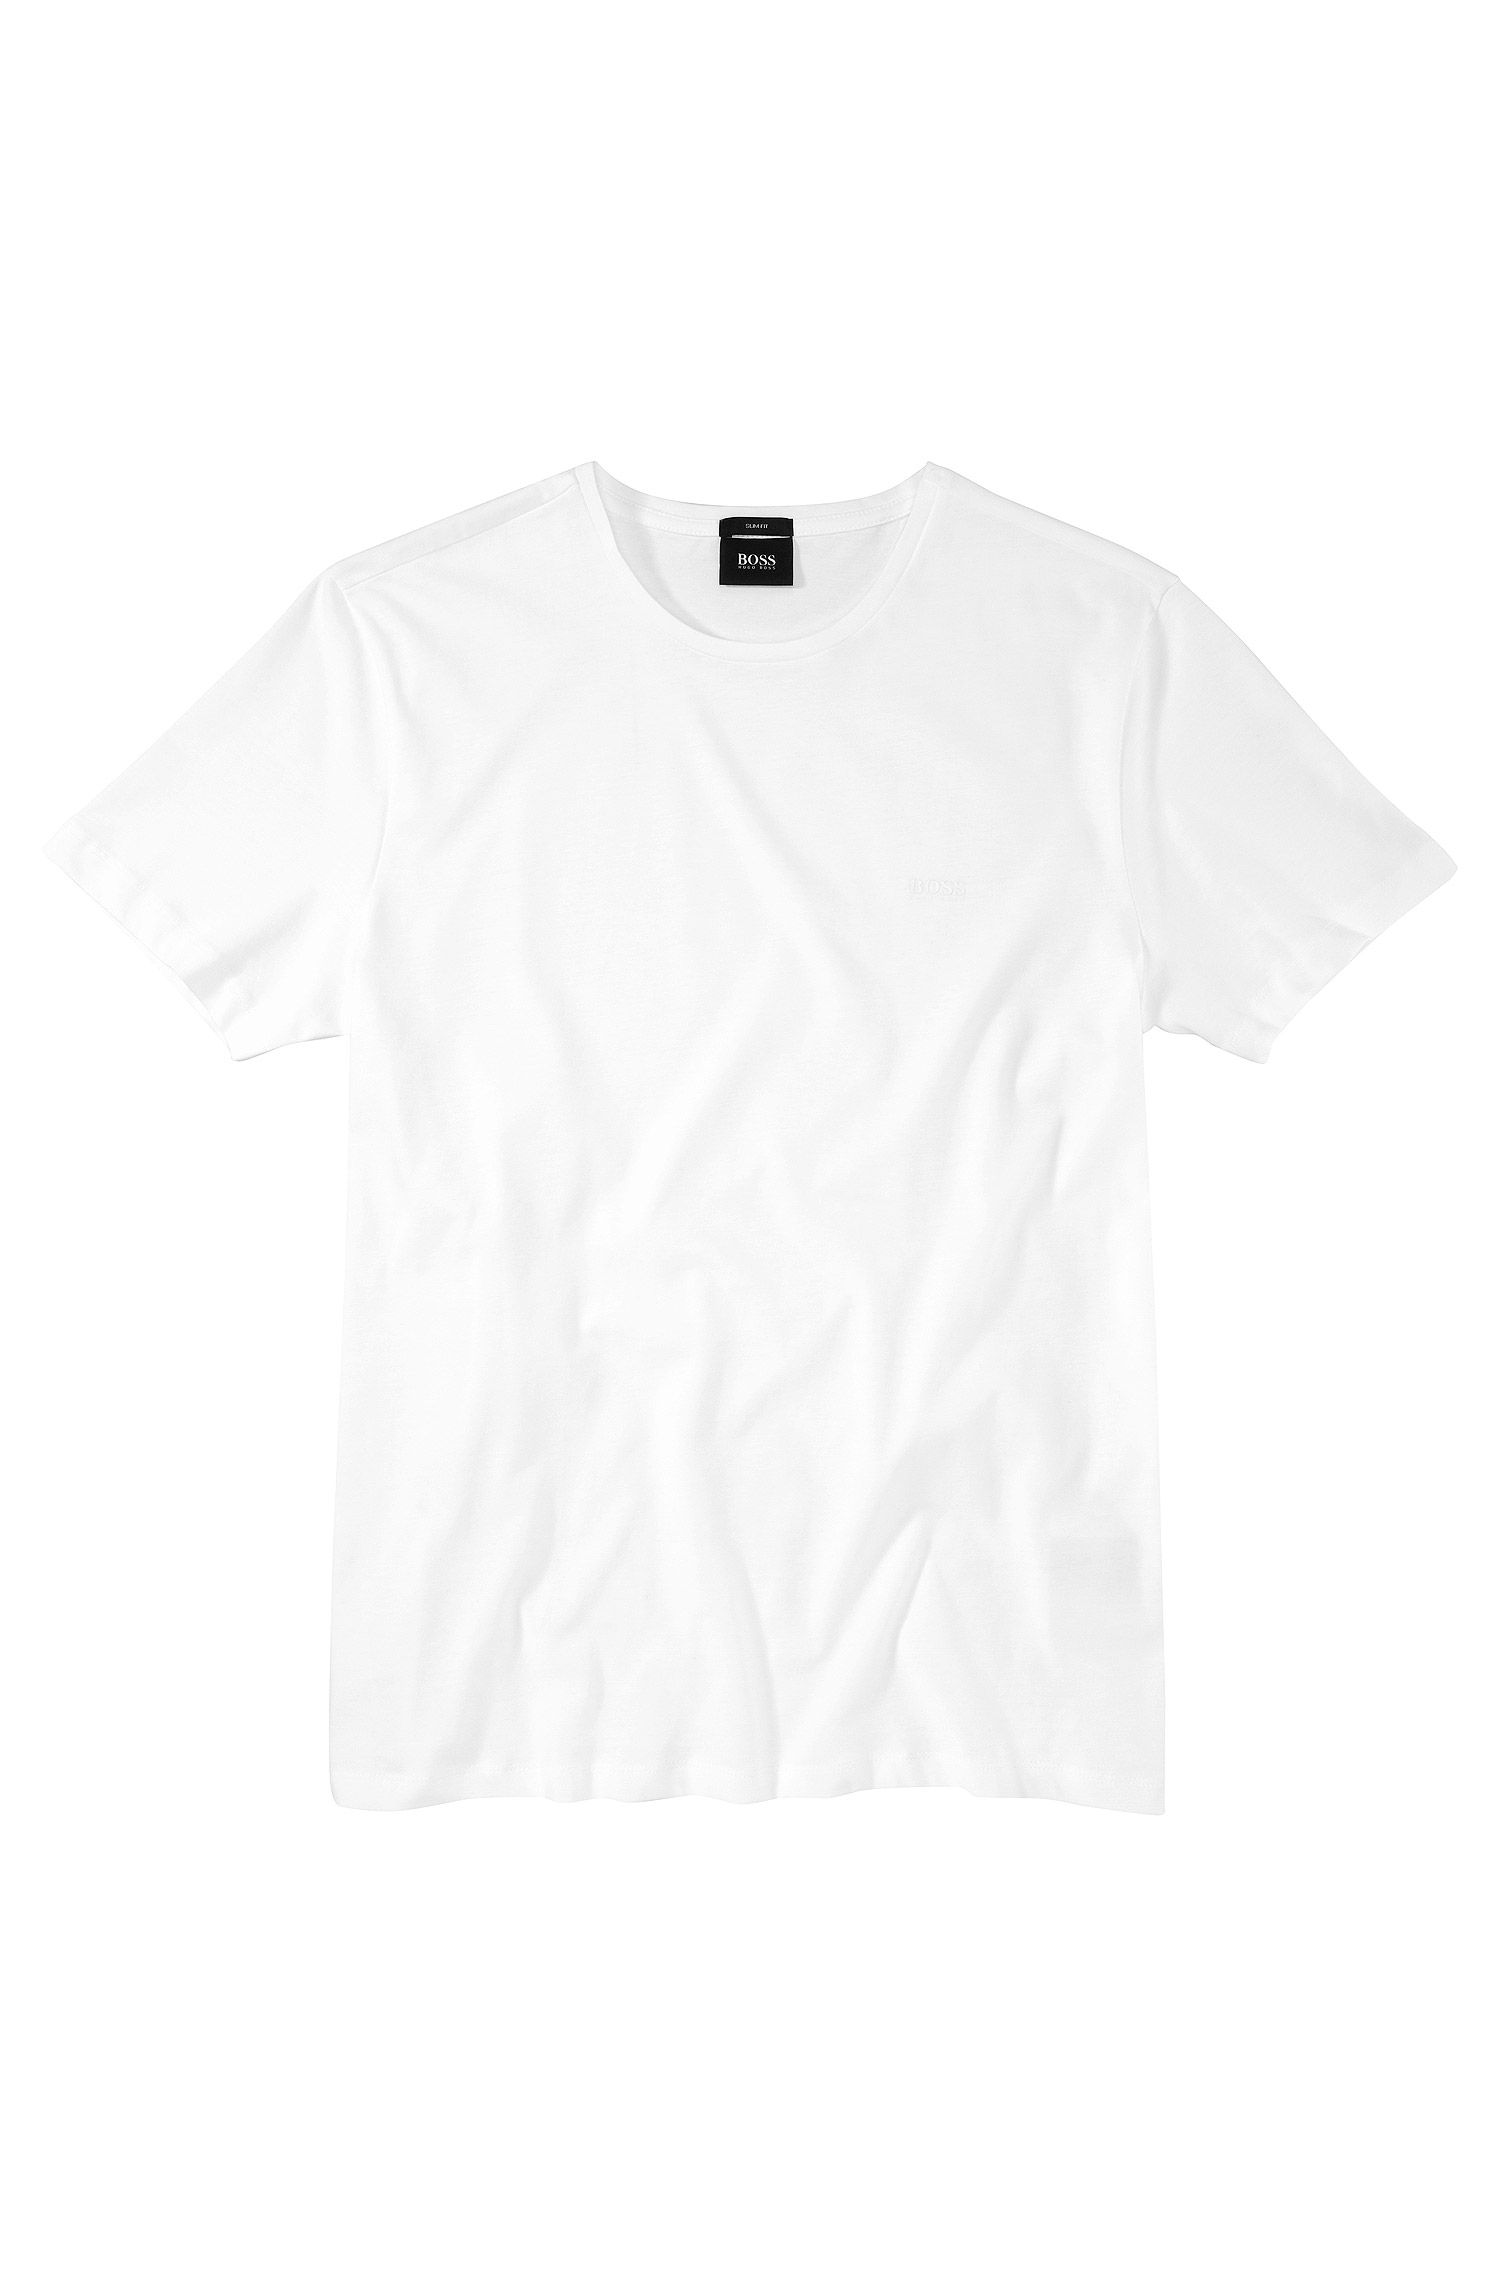 T-shirt Slim Fit en coton : « Lecco 80 »